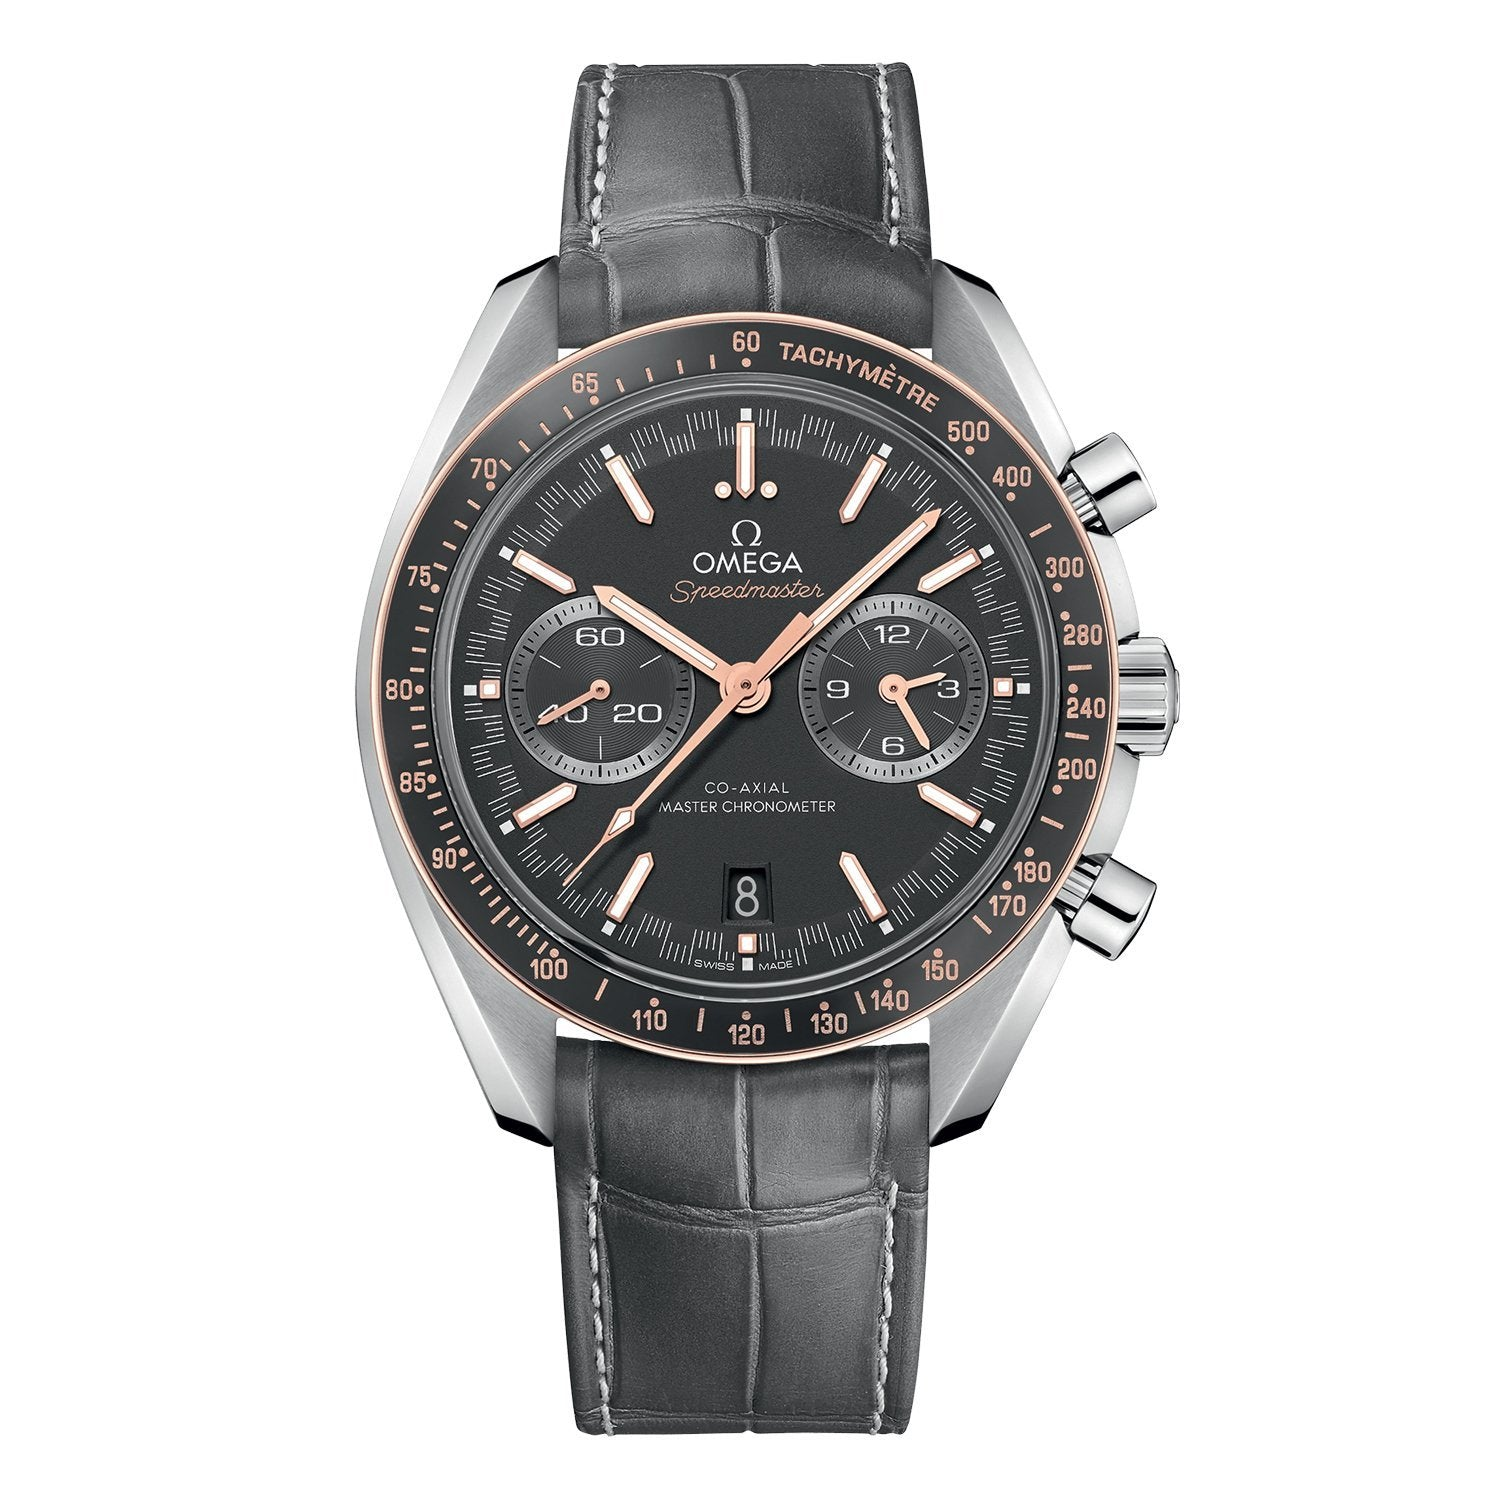 OMEGA Speedmaster Co-Axial Master Chronometer Chronograph